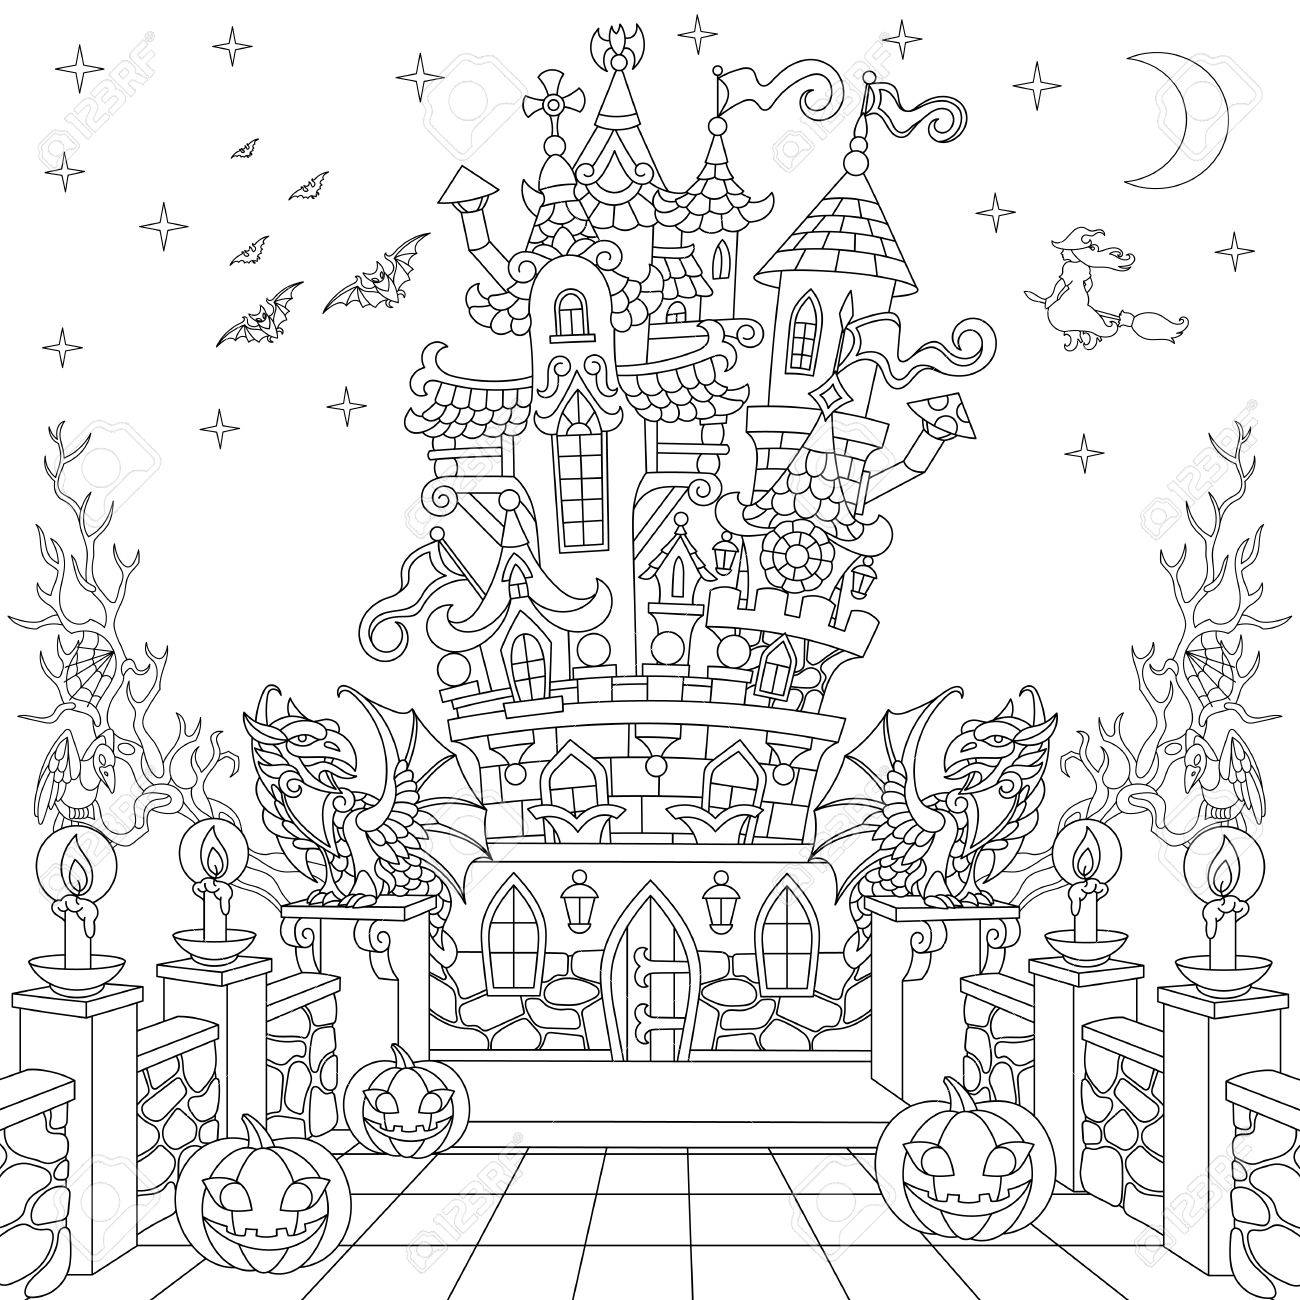 Halloween coloring page. Spooky castle, halloween pumpkins, flying bats, witch, gothic statues of dragons, moon, stars. Freehand sketch drawing for adult antistress coloring book in zentangle style. - 87349358